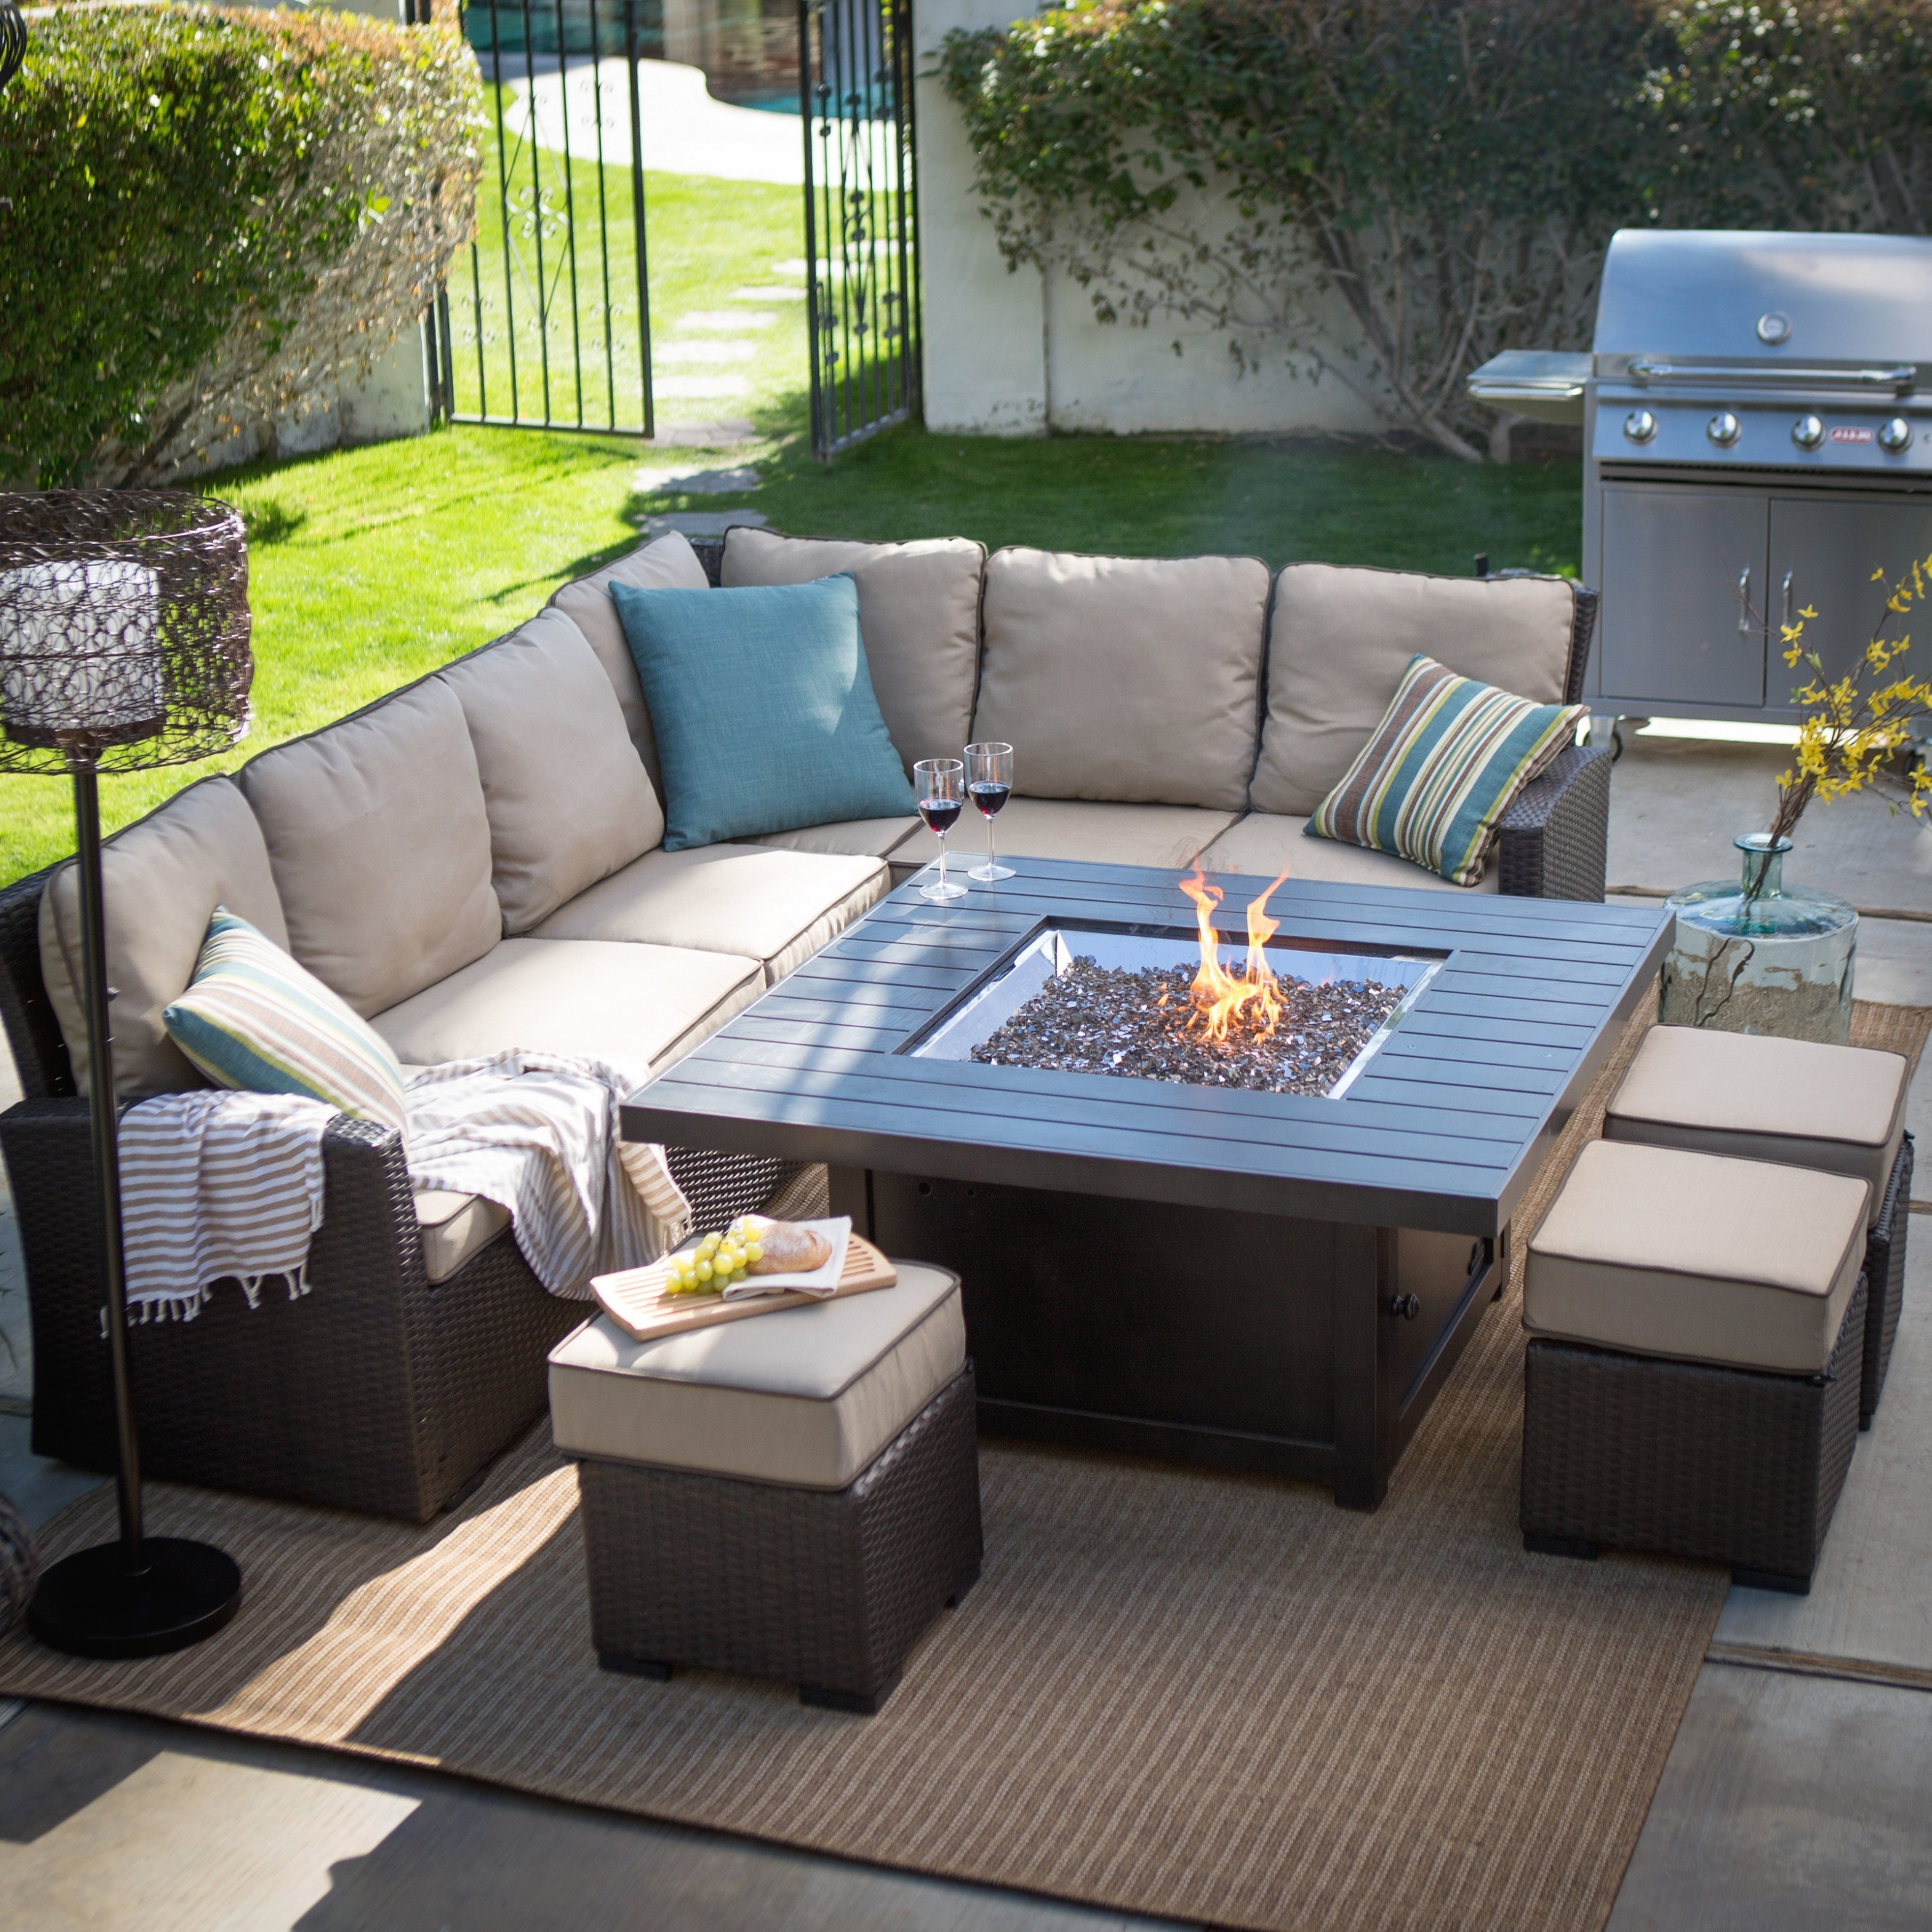 Patio Conversation Sets With Propane Fire Pit Inside Most Recent Colossal Patio Furniture Sets With Fire Pit Porch Chairs Table Cheap (View 13 of 15)